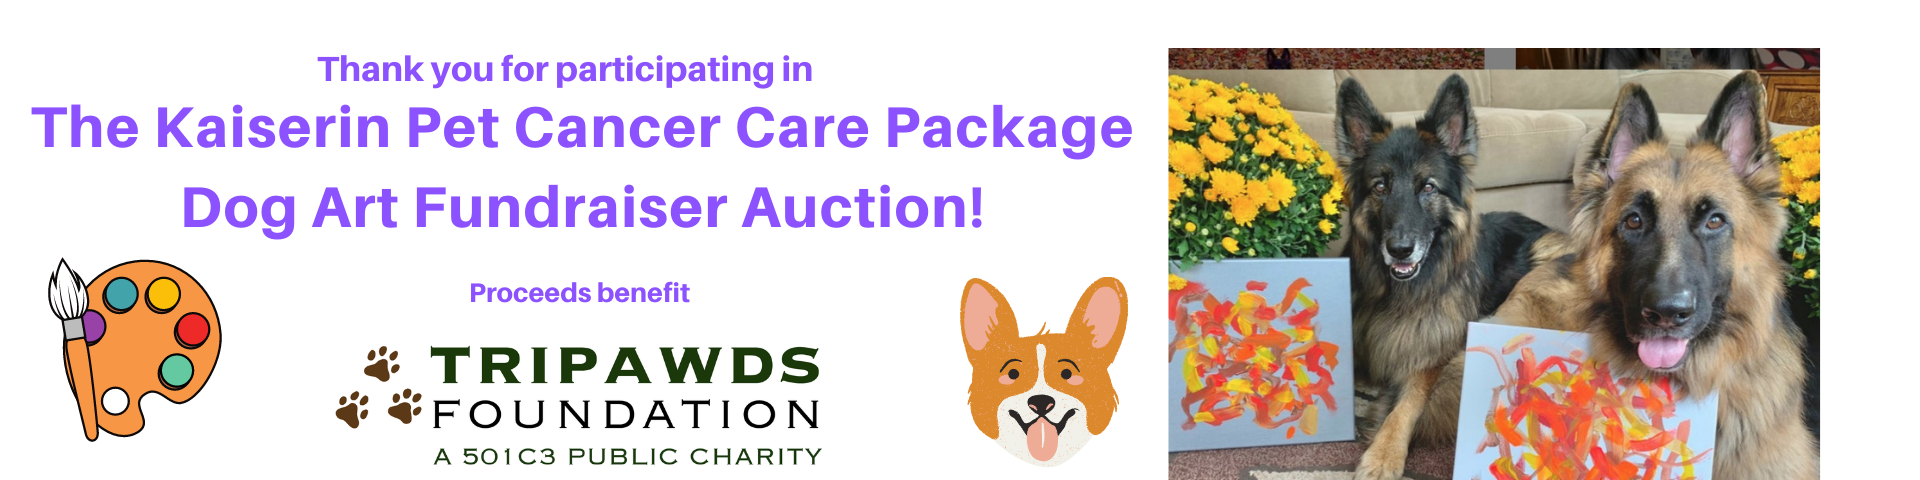 Panting Dogs Tripawds Fundraiser